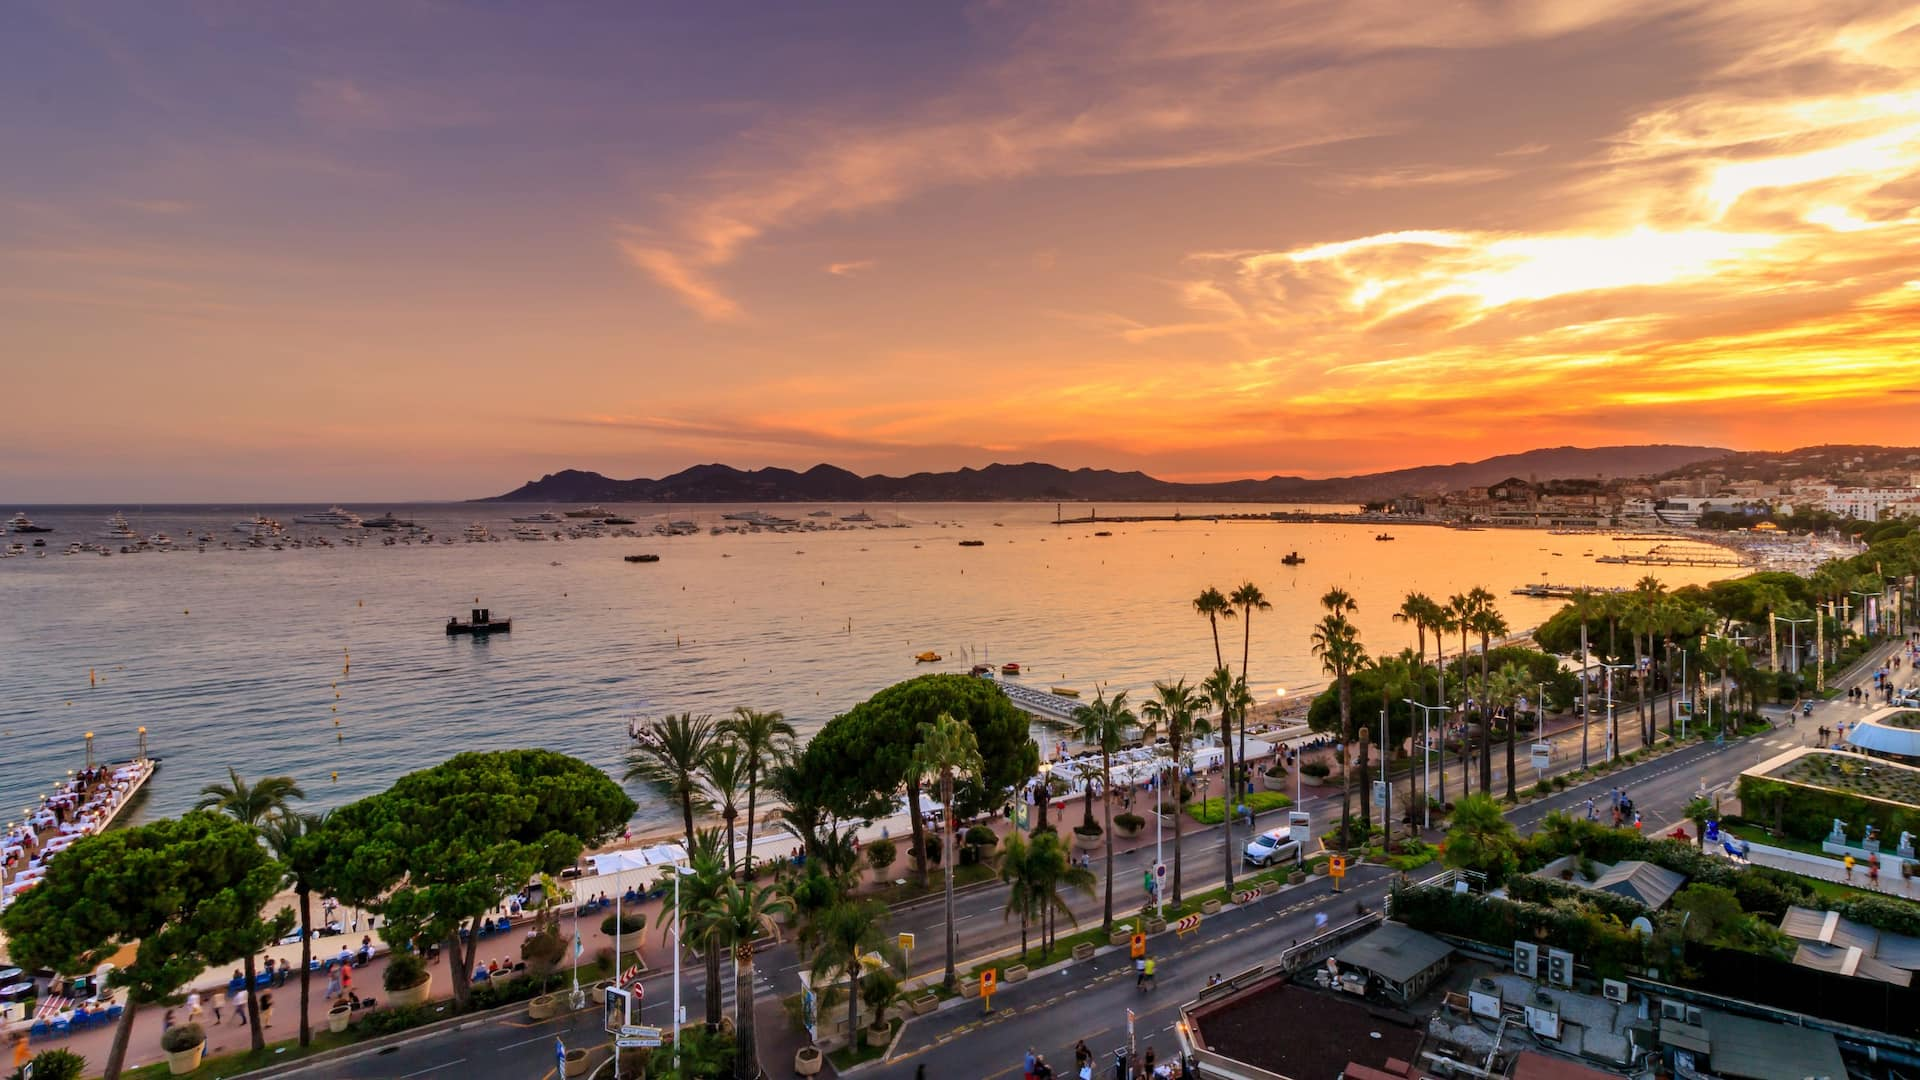 Luxury 5* Hôtel Martinez Cannes by Hyatt